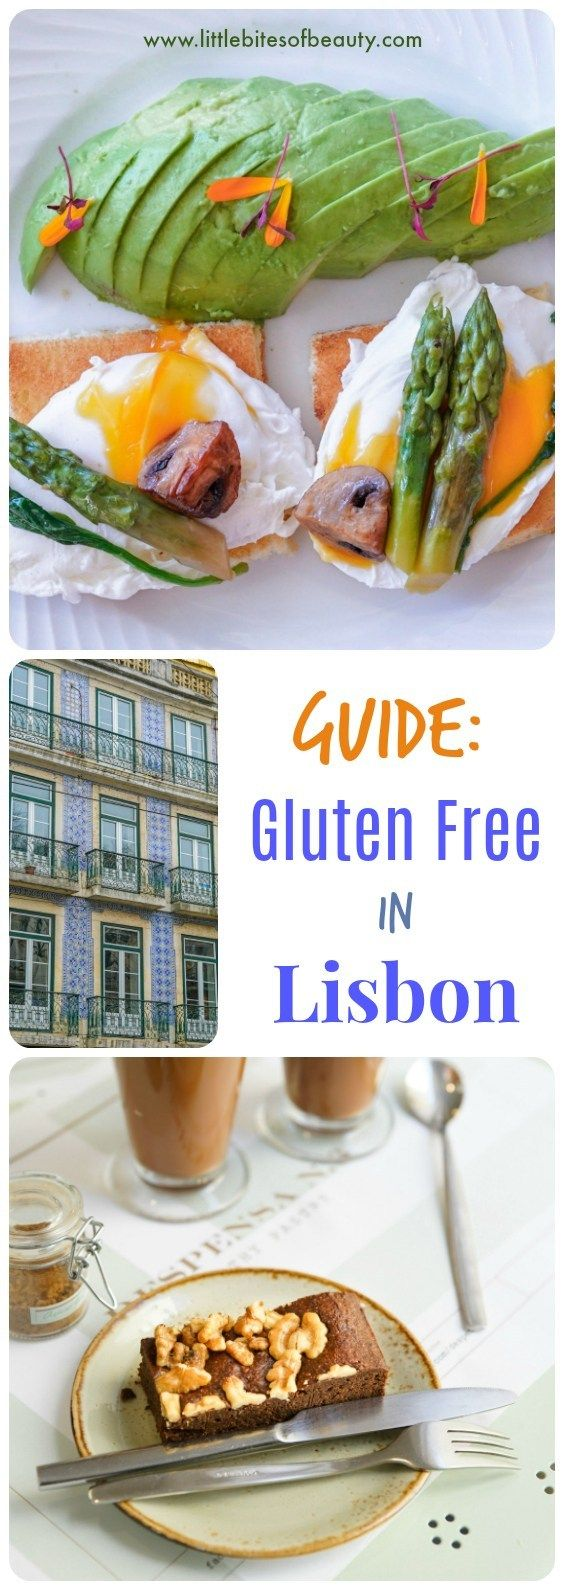 Where to Eat Gluten Free in Lisbon - Little Bites of Beauty #lisbon